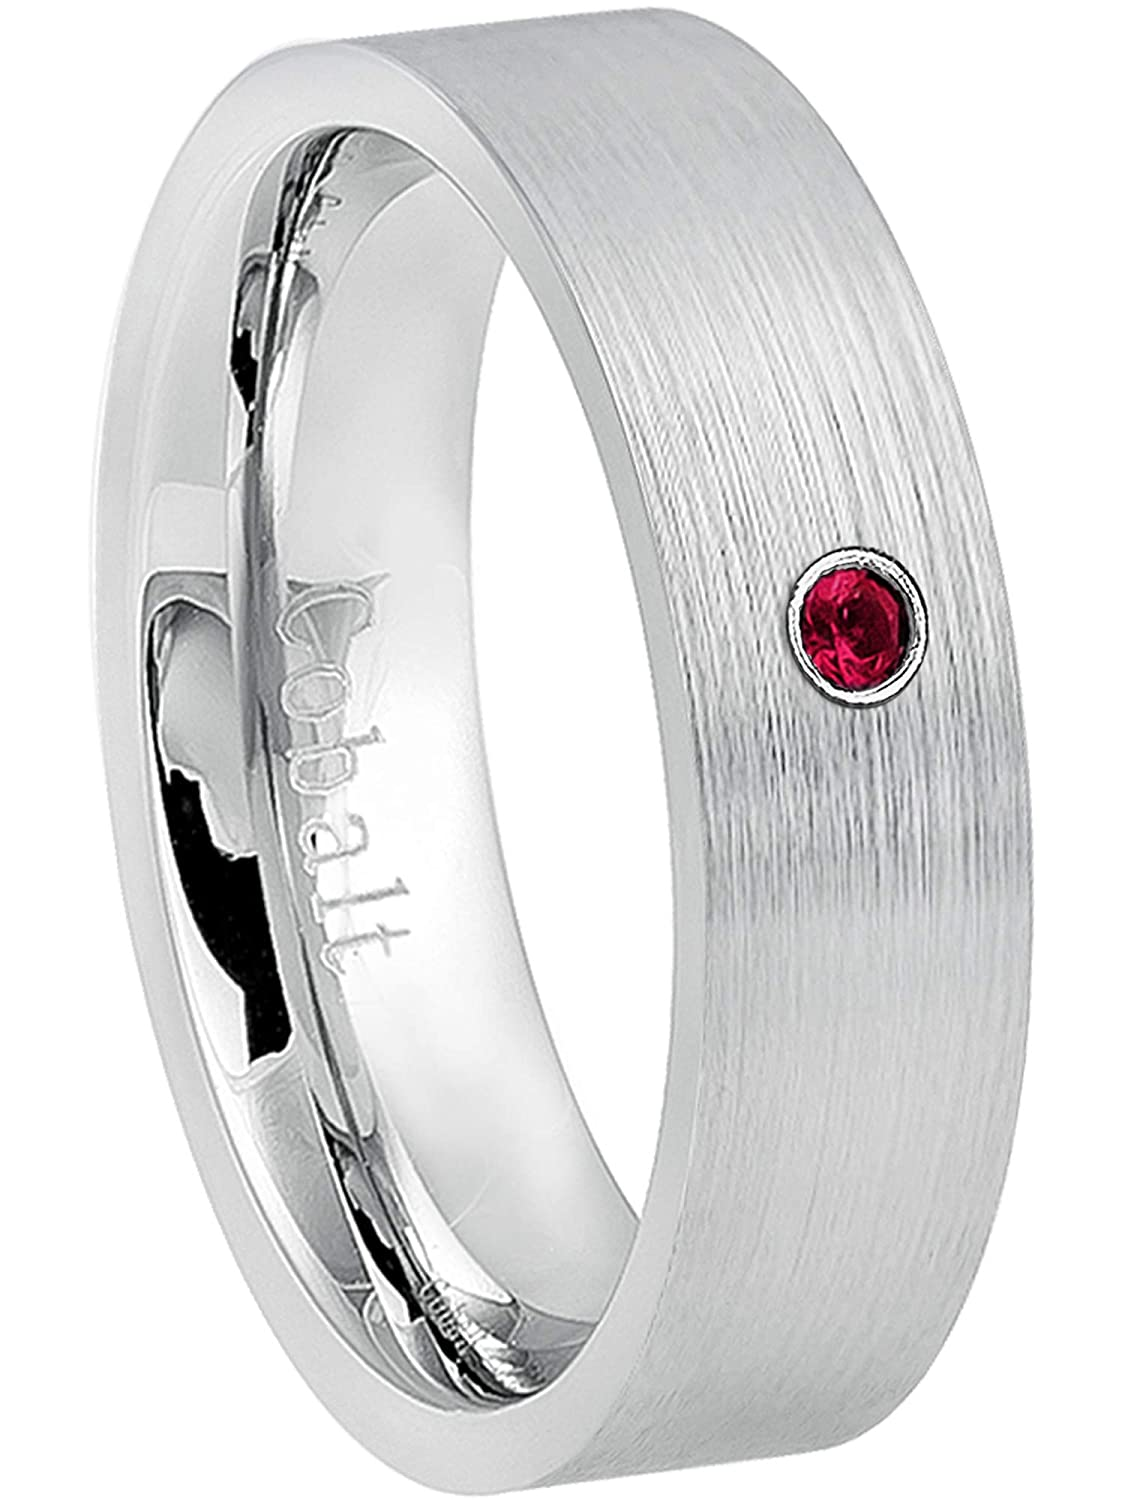 74c5f3481af61 Jewelry Avalanche 6MM Comfort Fit Brushed Pipe Cut Women's Cobalt Chrome  Wedding Band - 0.07ct Ruby Cobalt Ring - July Birthstone Ring